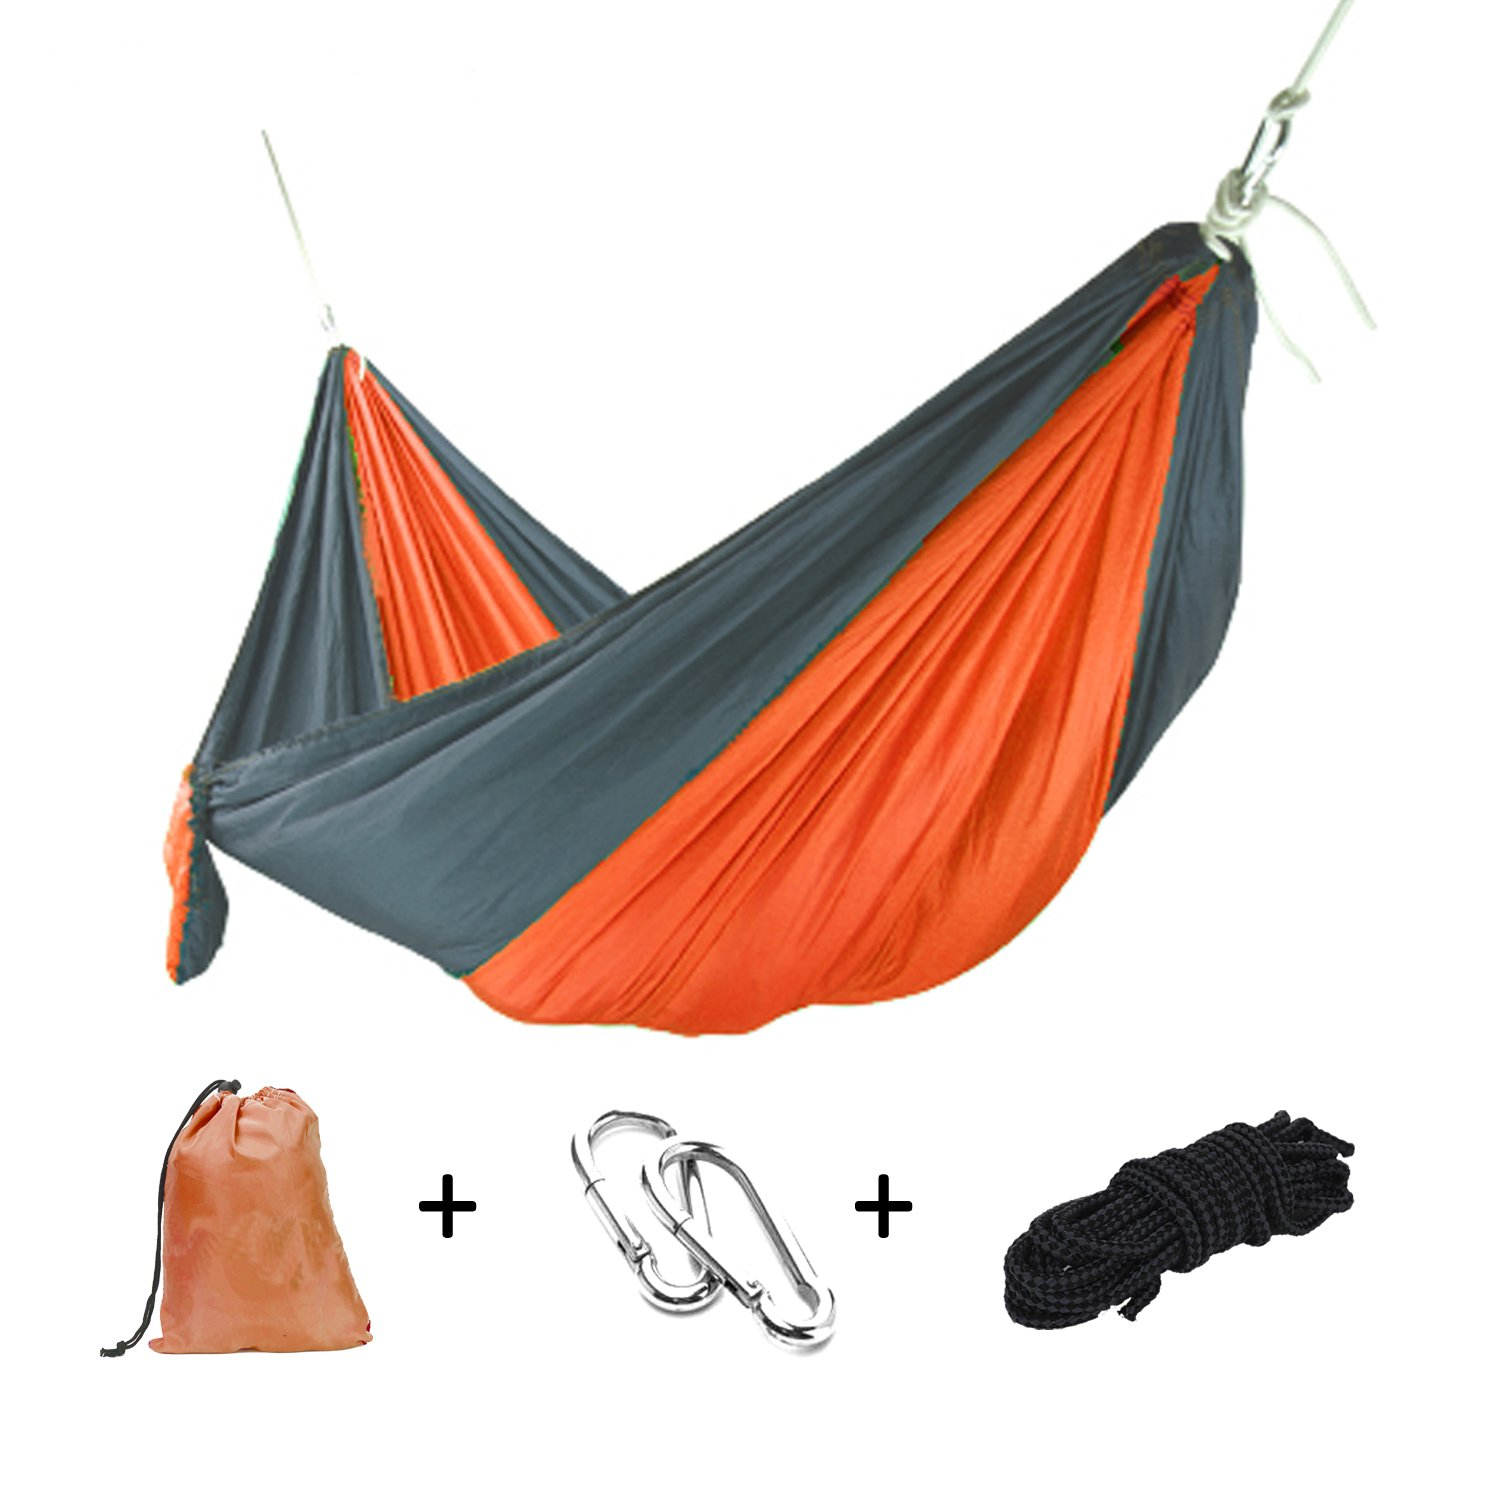 Goodlee Single Double Portable Camping Hammock,Lightweight Nylon Parachute Hammock with Tree Straps for Travel,Camping,Backpacking and more.